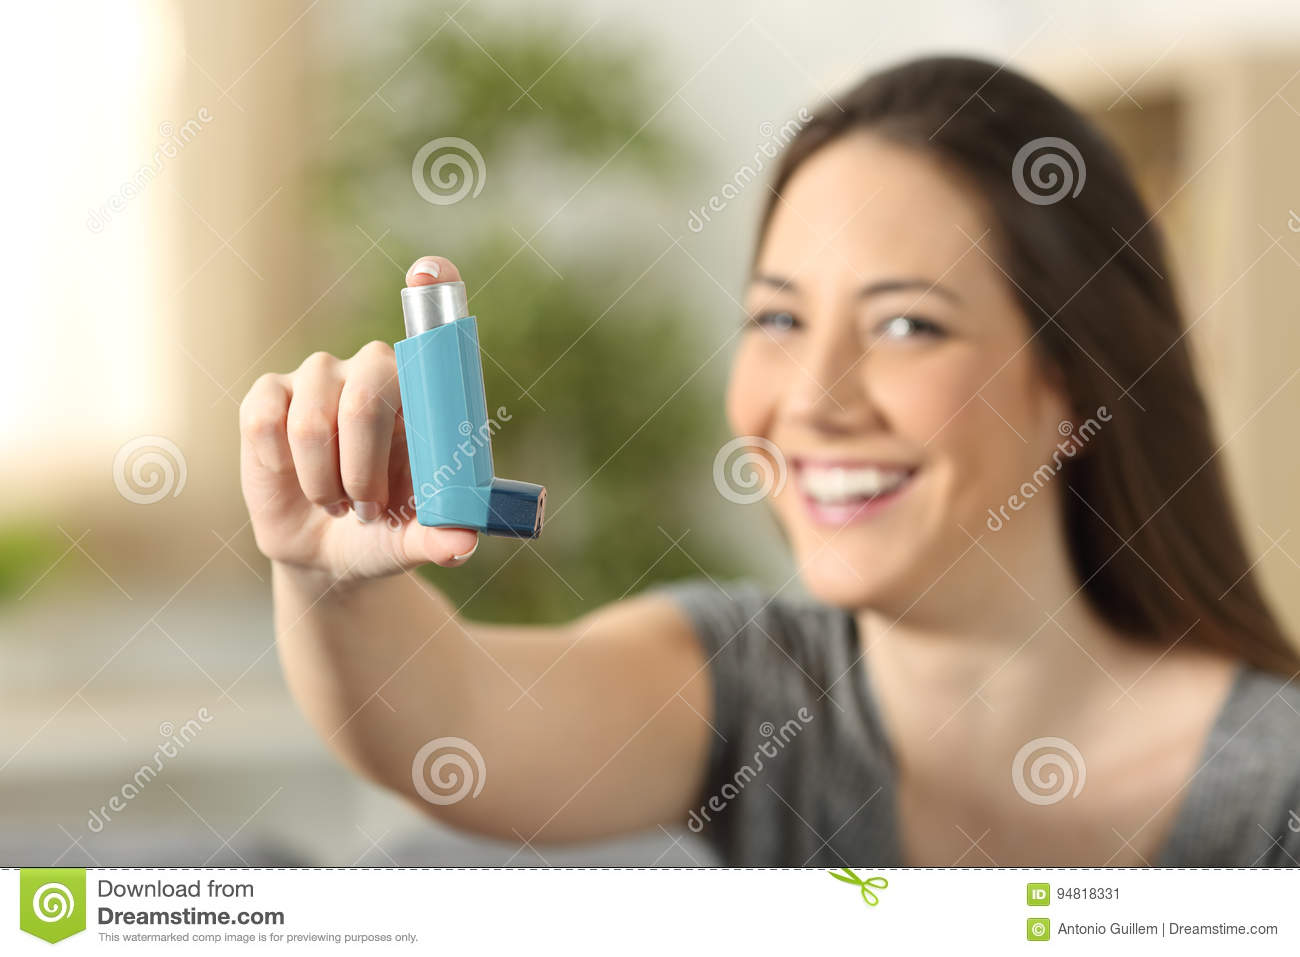 Girl showing an asthma inhaler stock image image of hand